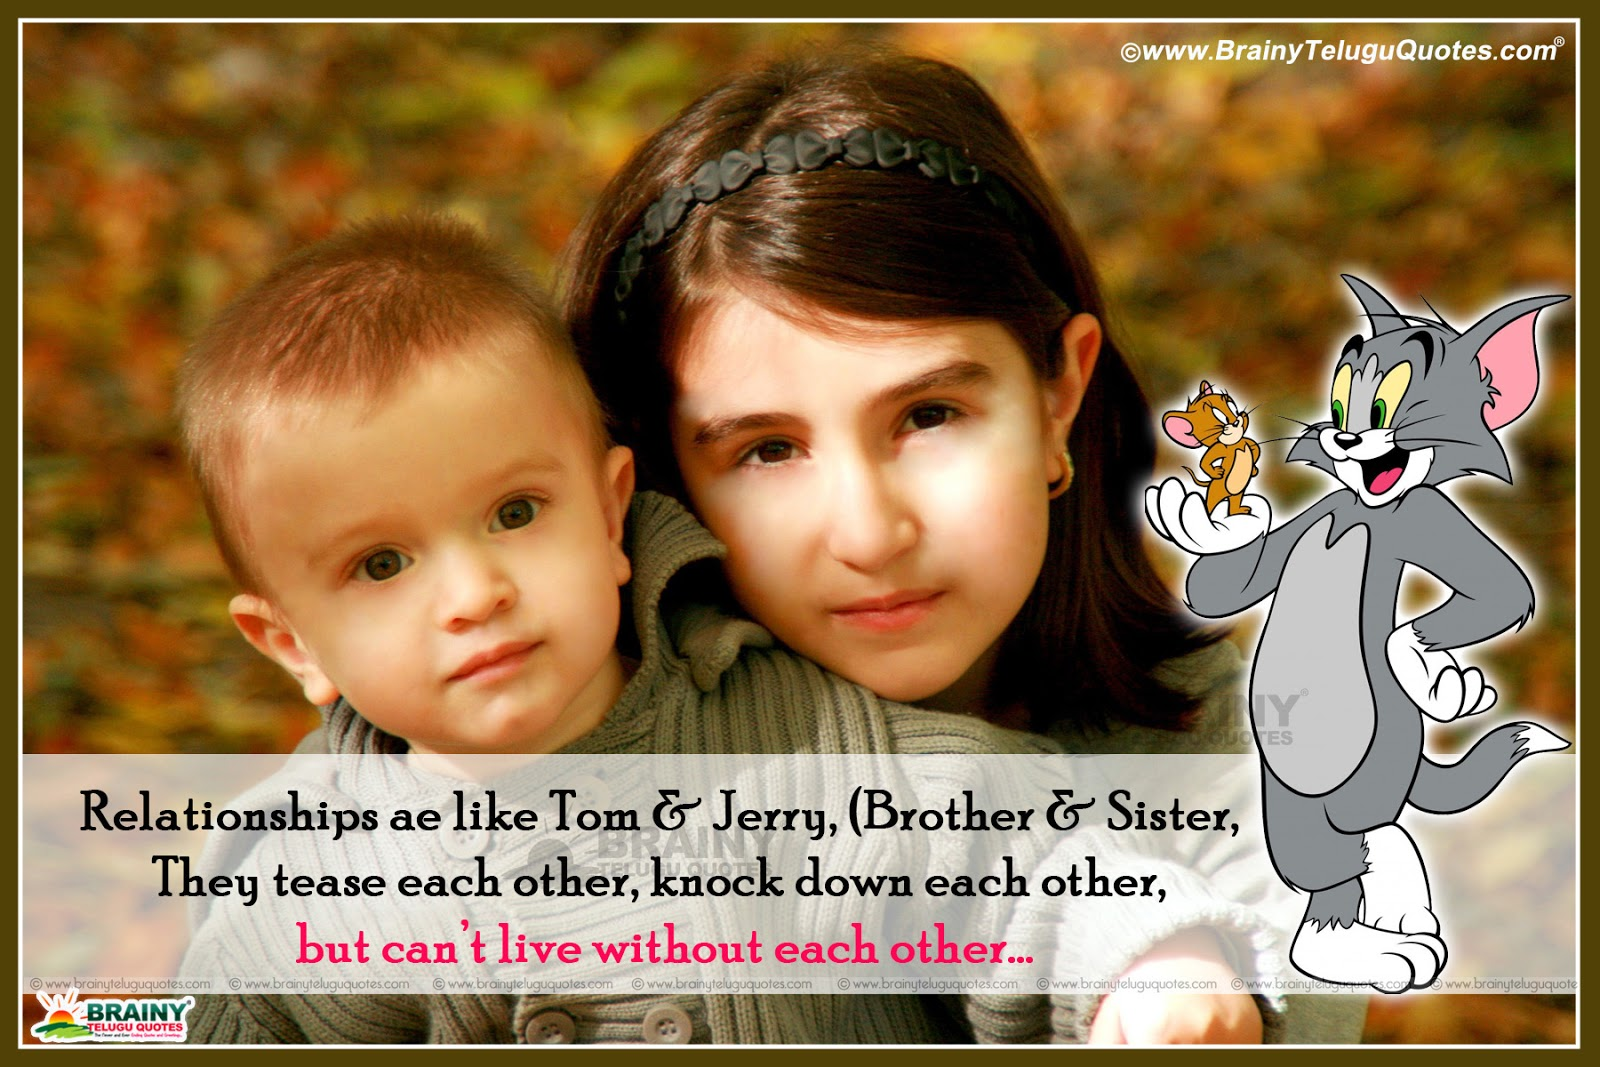 brother and sister relationship images